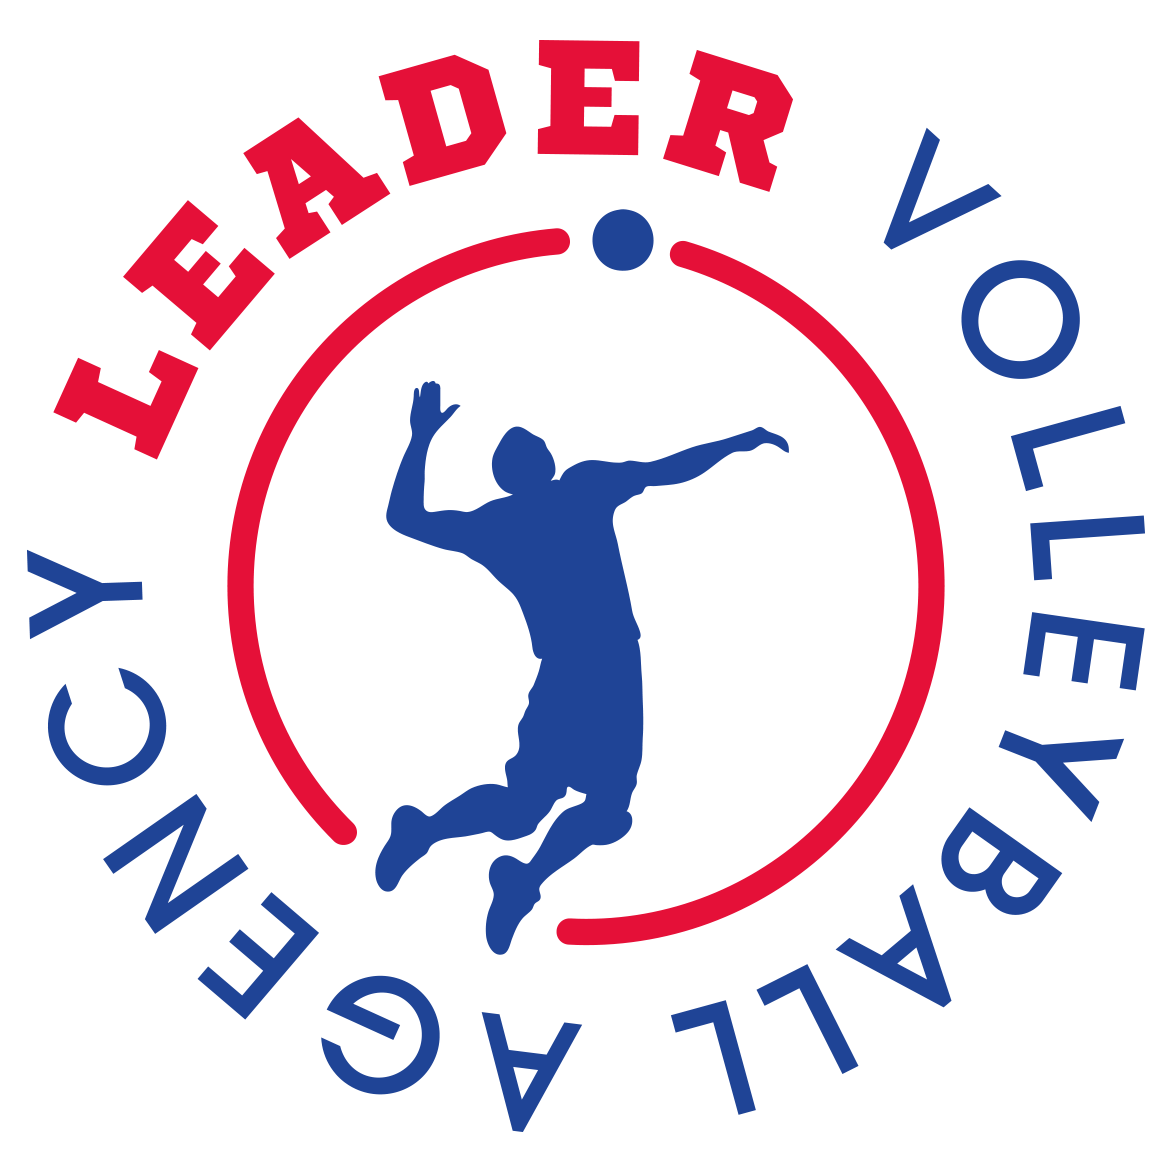 LEADER VOLLEYBALL AGENCY